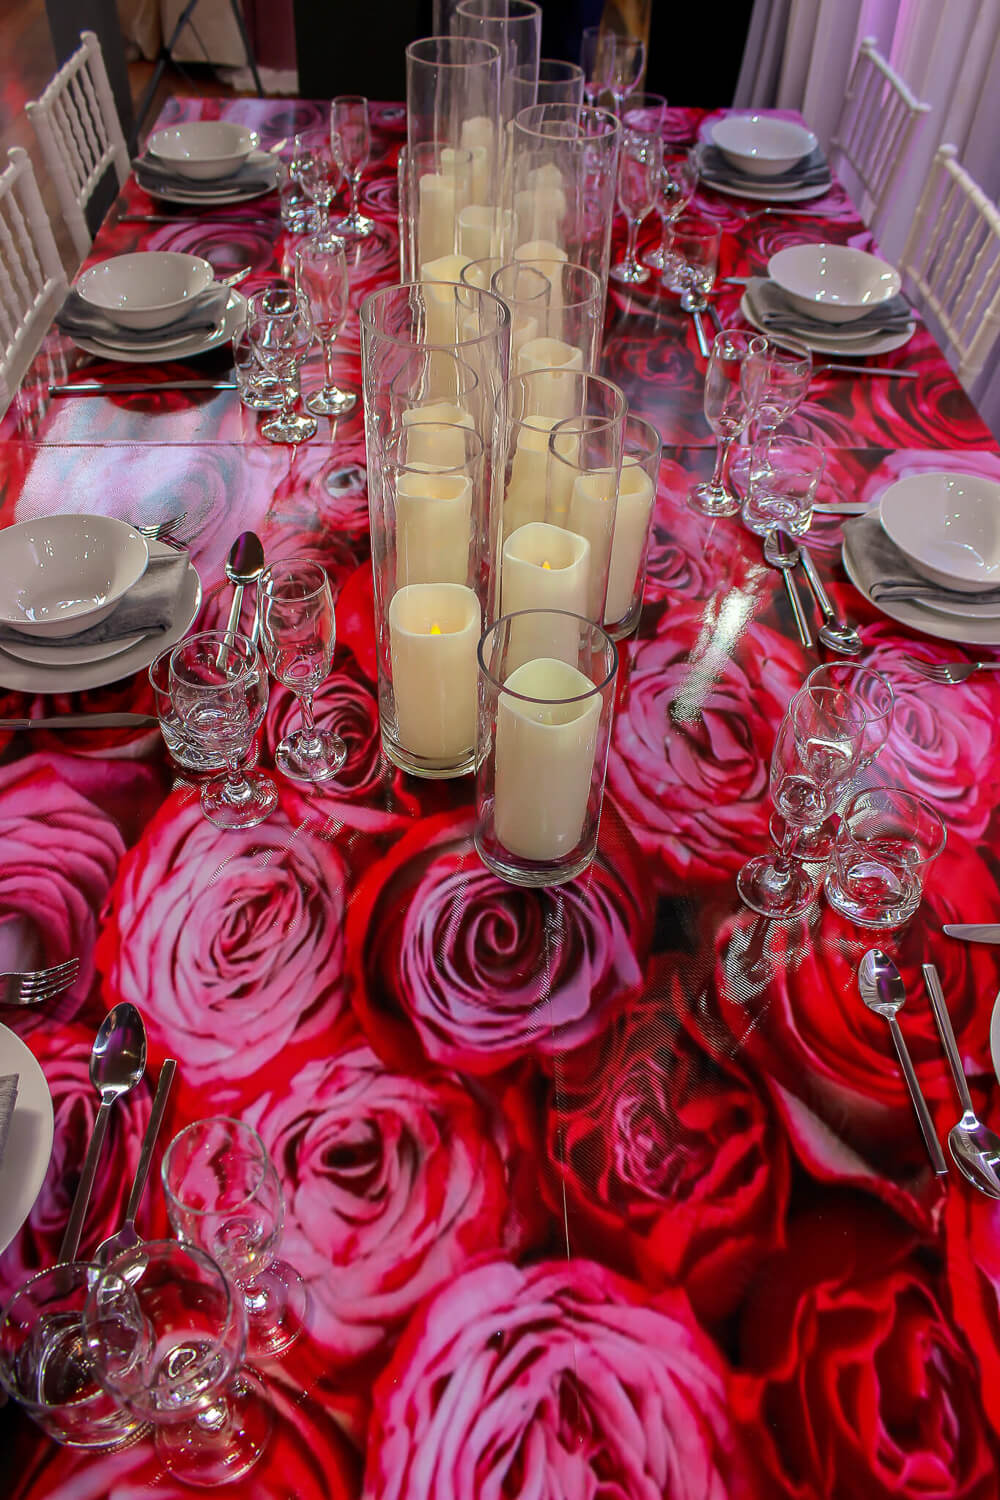 Rose Decal on Table party hire Melbourne